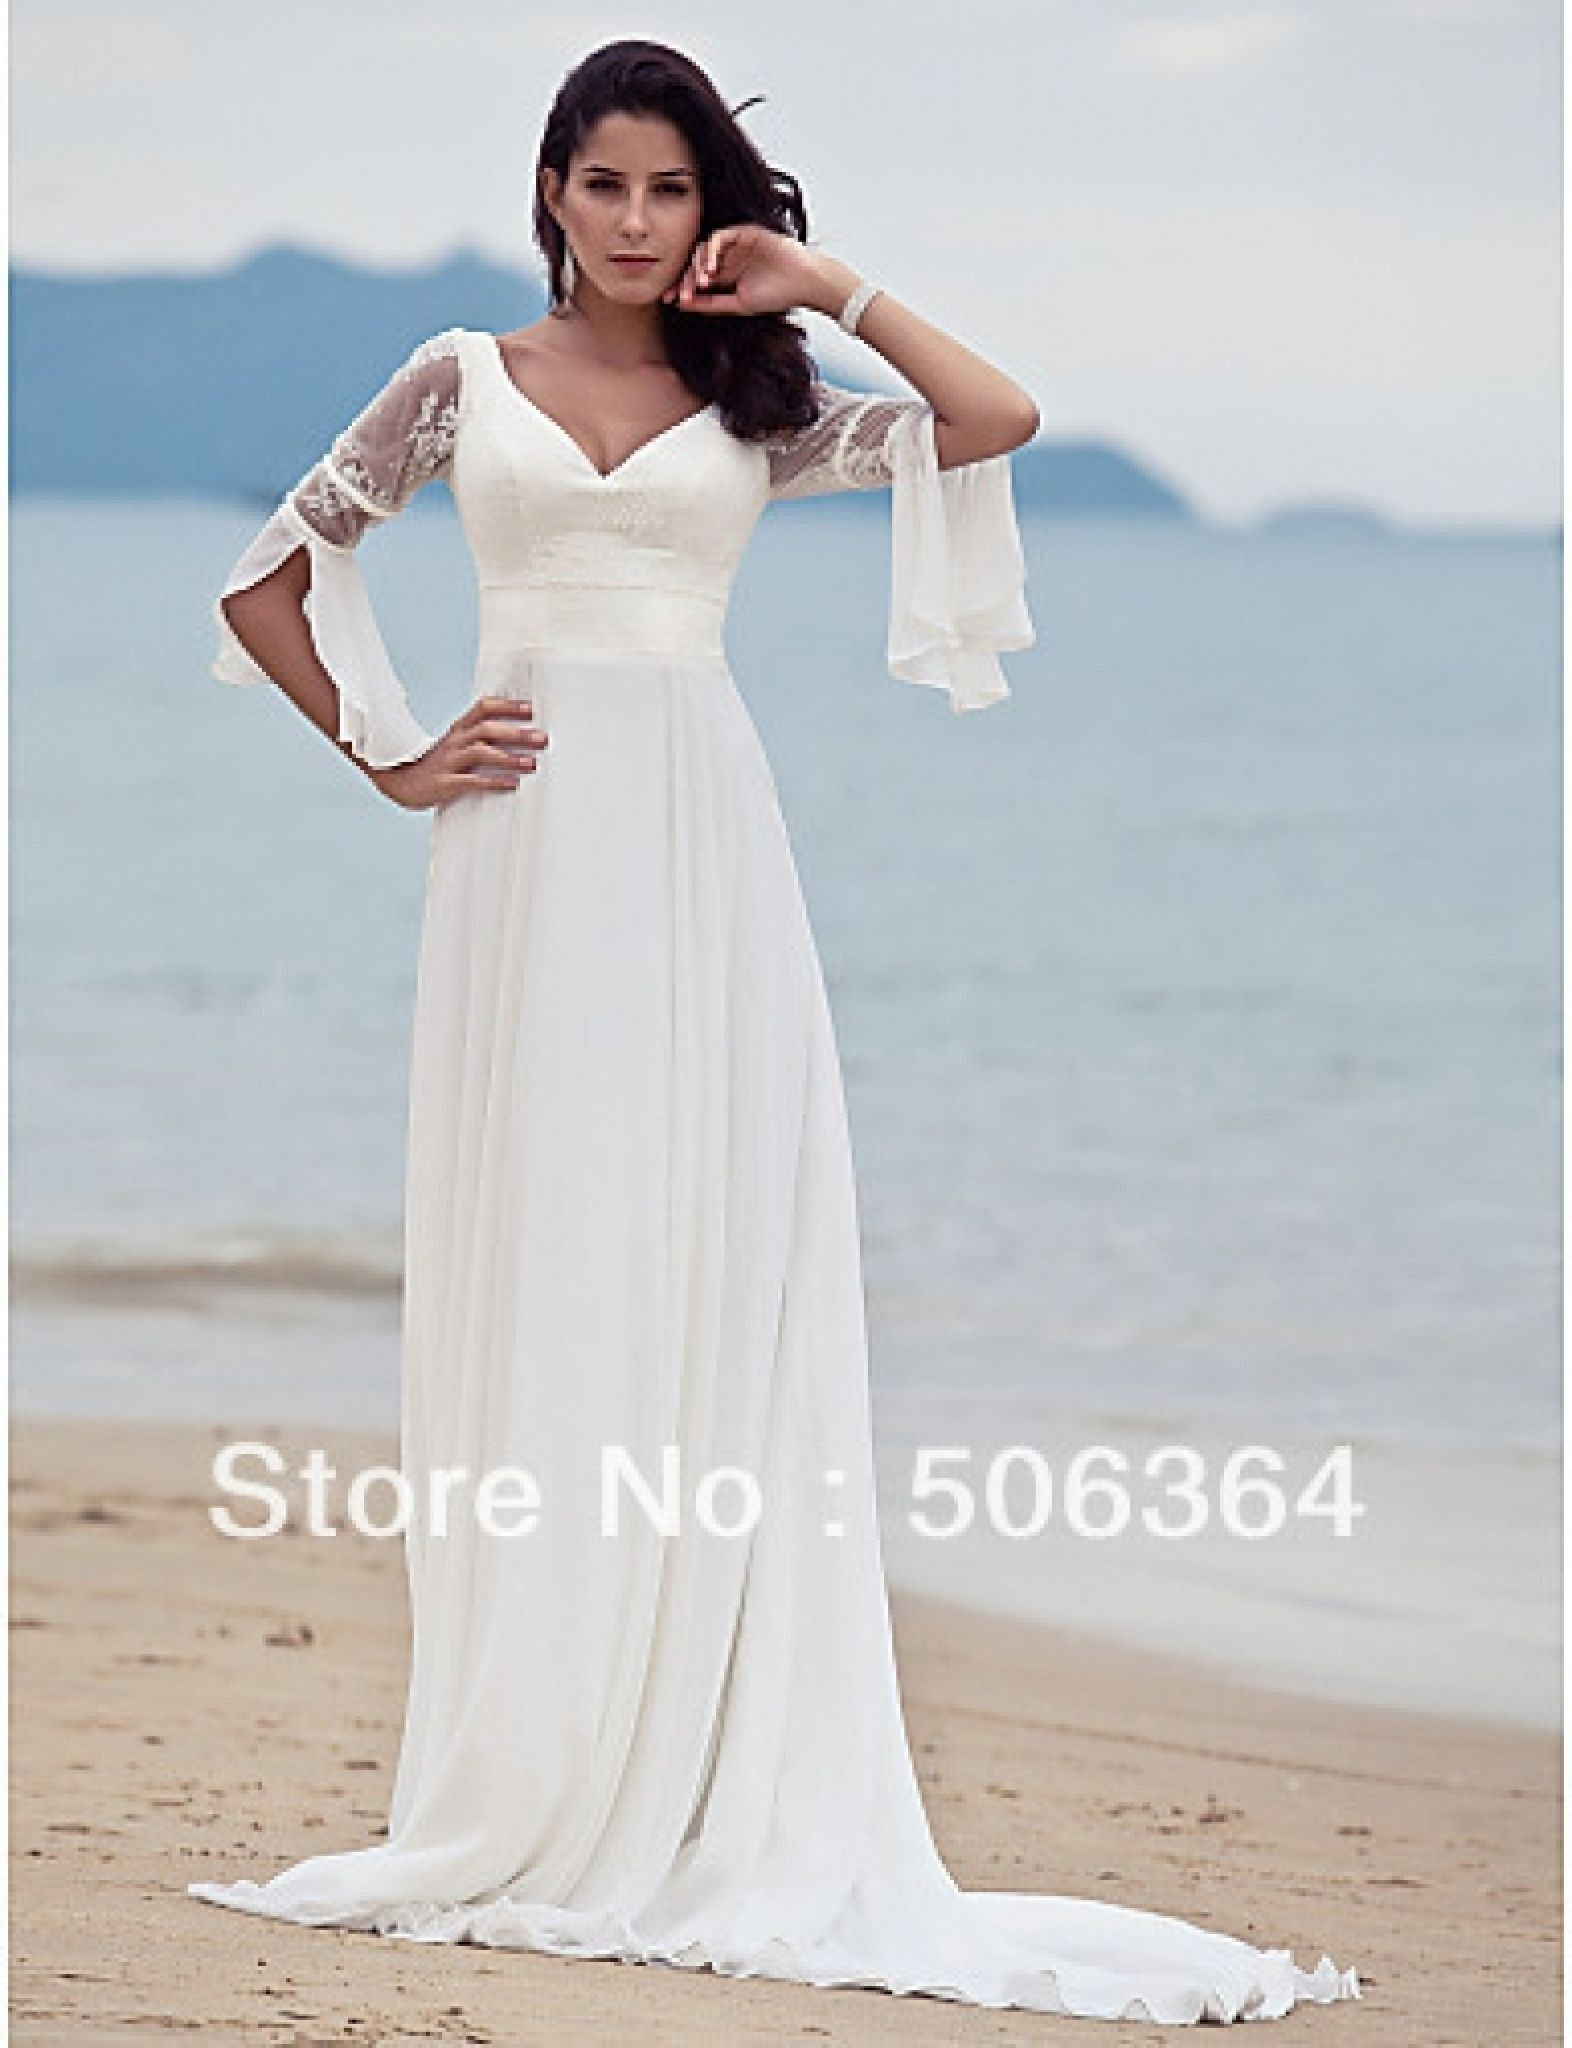 wedding dresses for women over 40 - women\'s dresses for wedding ...